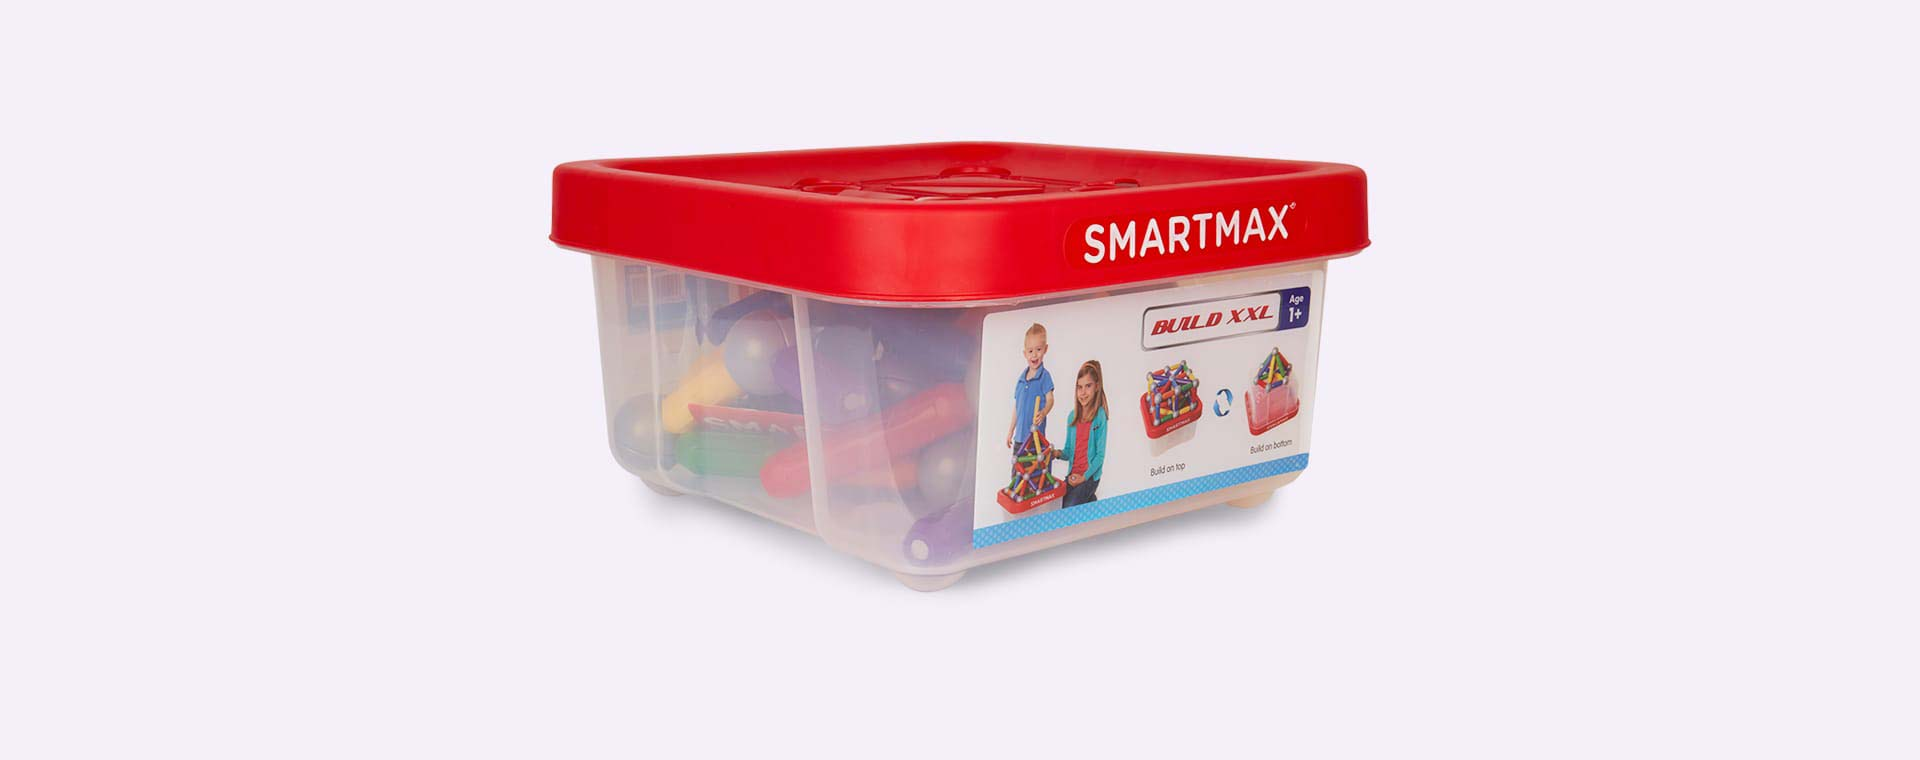 Multi SmartMax SmartMax Build XXL 70-Piece